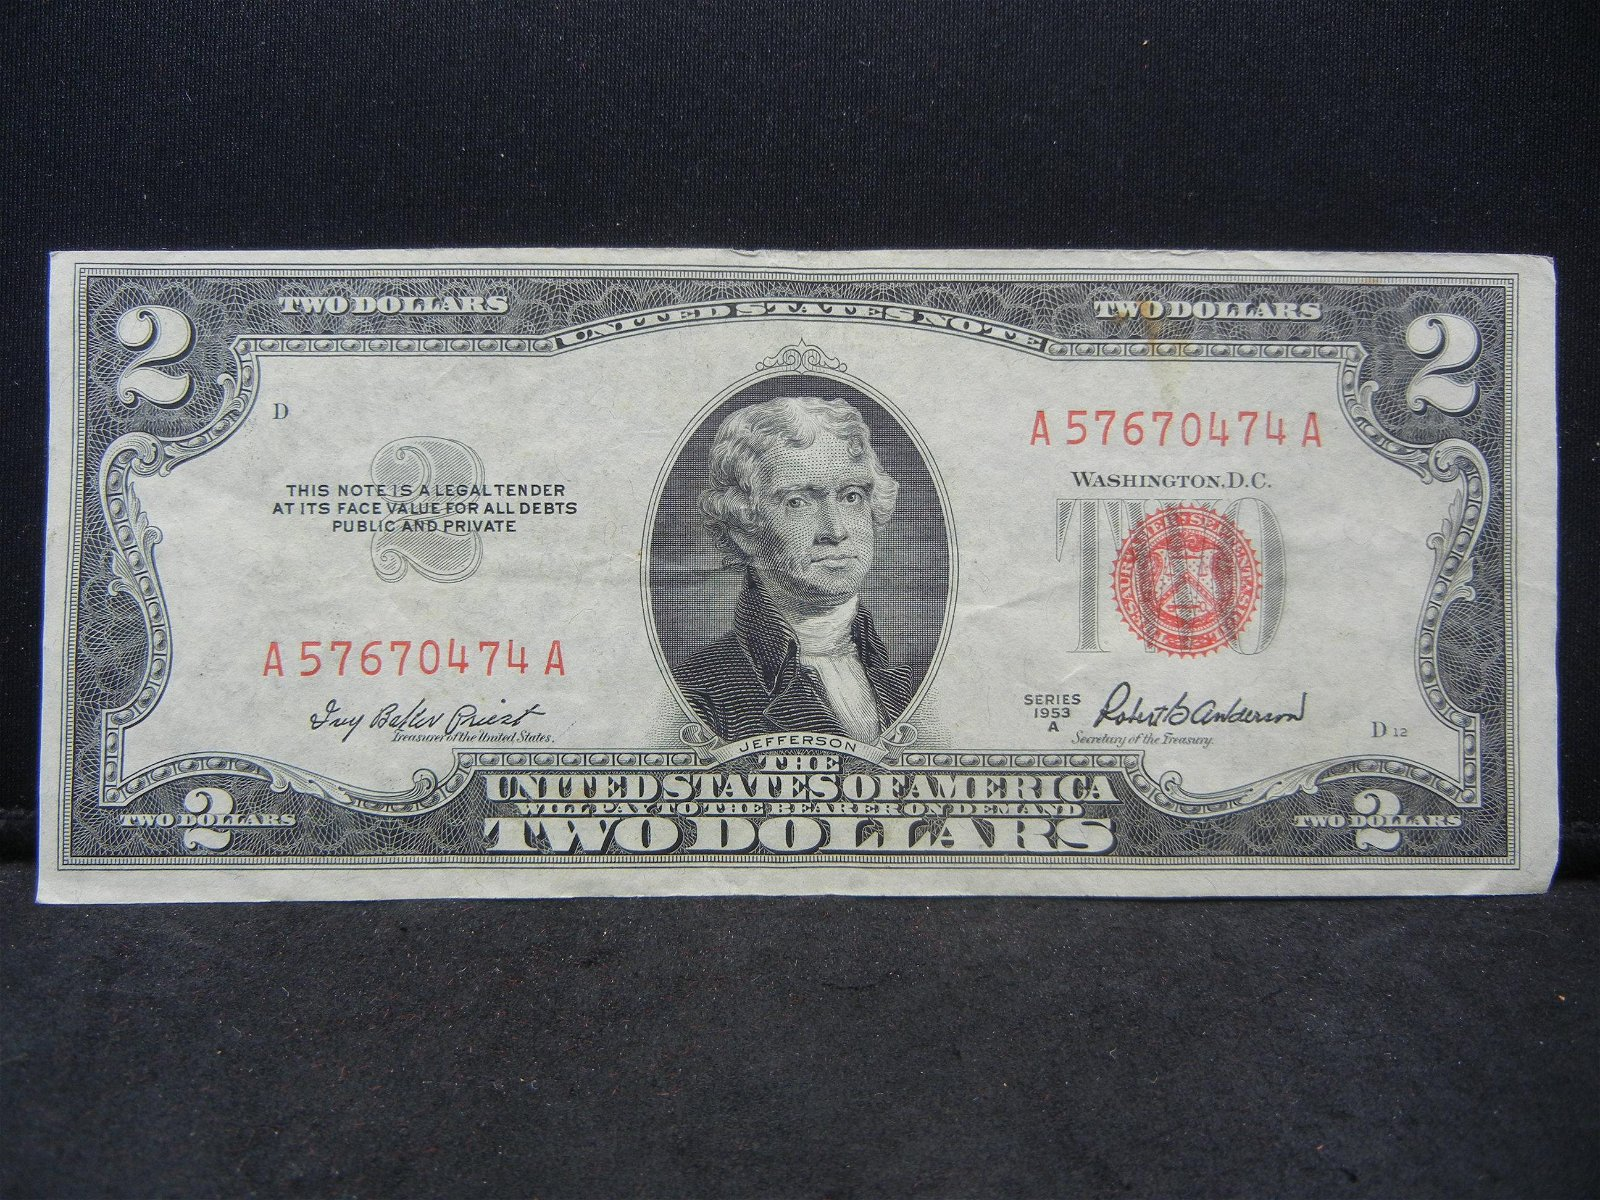 Series 1953 A $2.00 Red Seal United States Note